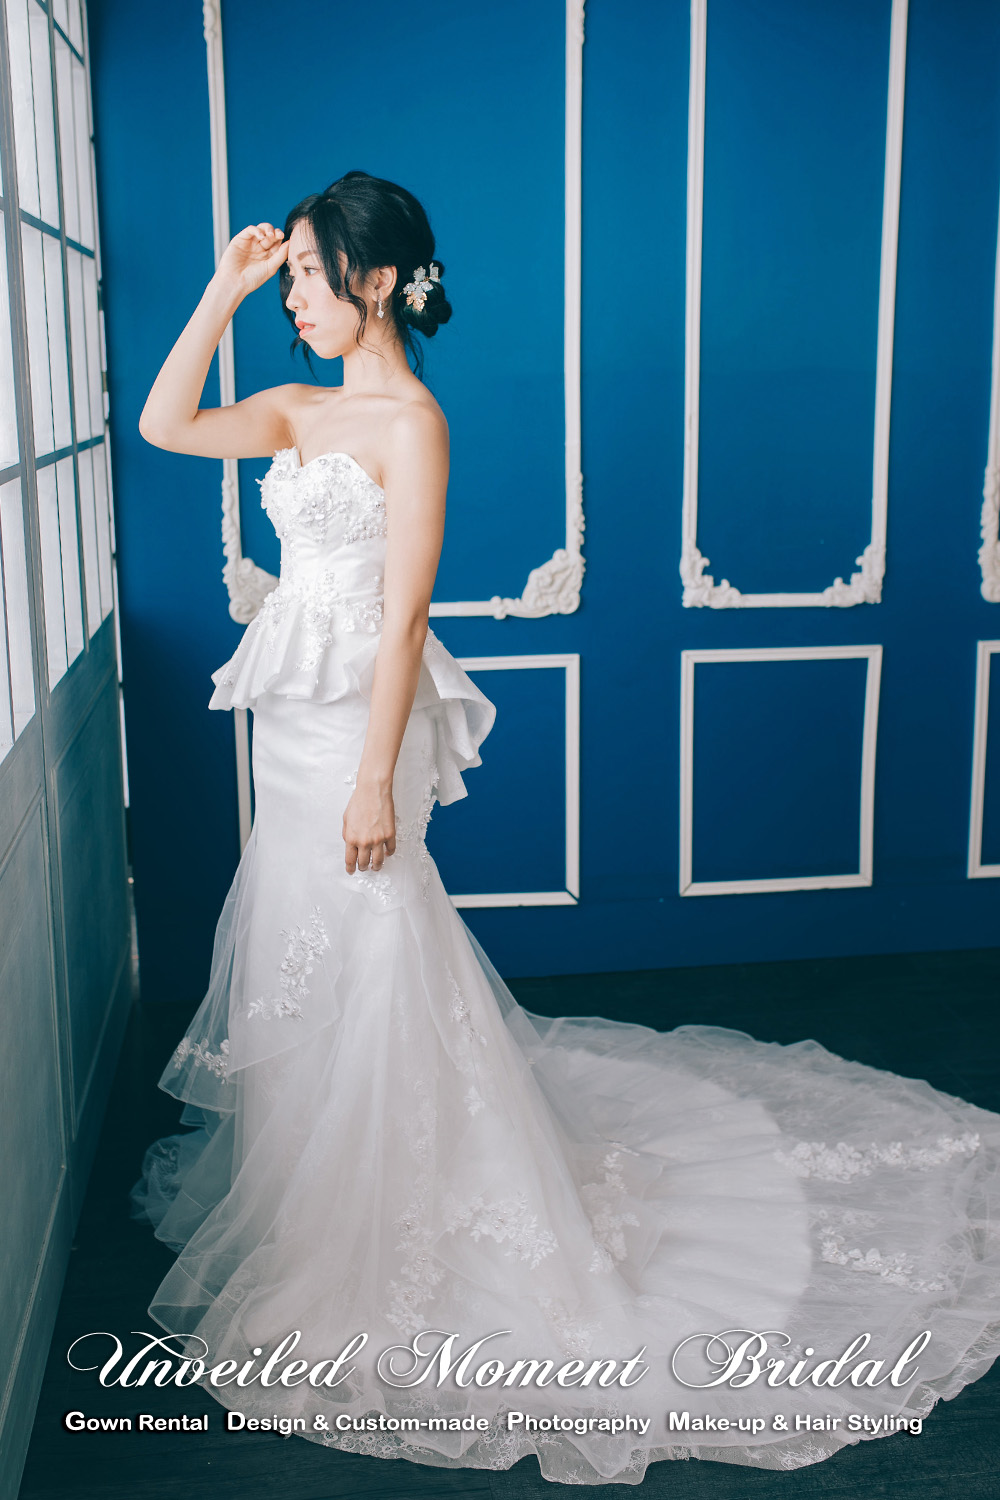 Sweet-heart Neckline, strapless, low-cut, tube dress, beaded bodice, short skirt, sweep train, mermaid Wedding Gown. 心形胸, 無袖, 蕾絲釘珠, 顯瘦短裙, 拖尾, 魚尾婚紗